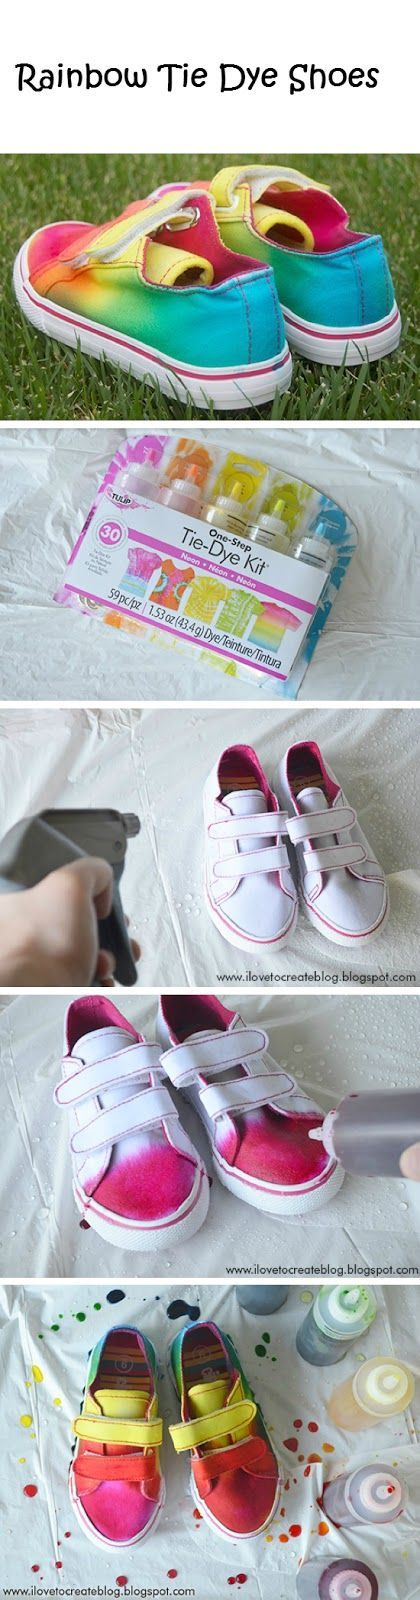 TIE DYE SHOES FOR THE GIRLS